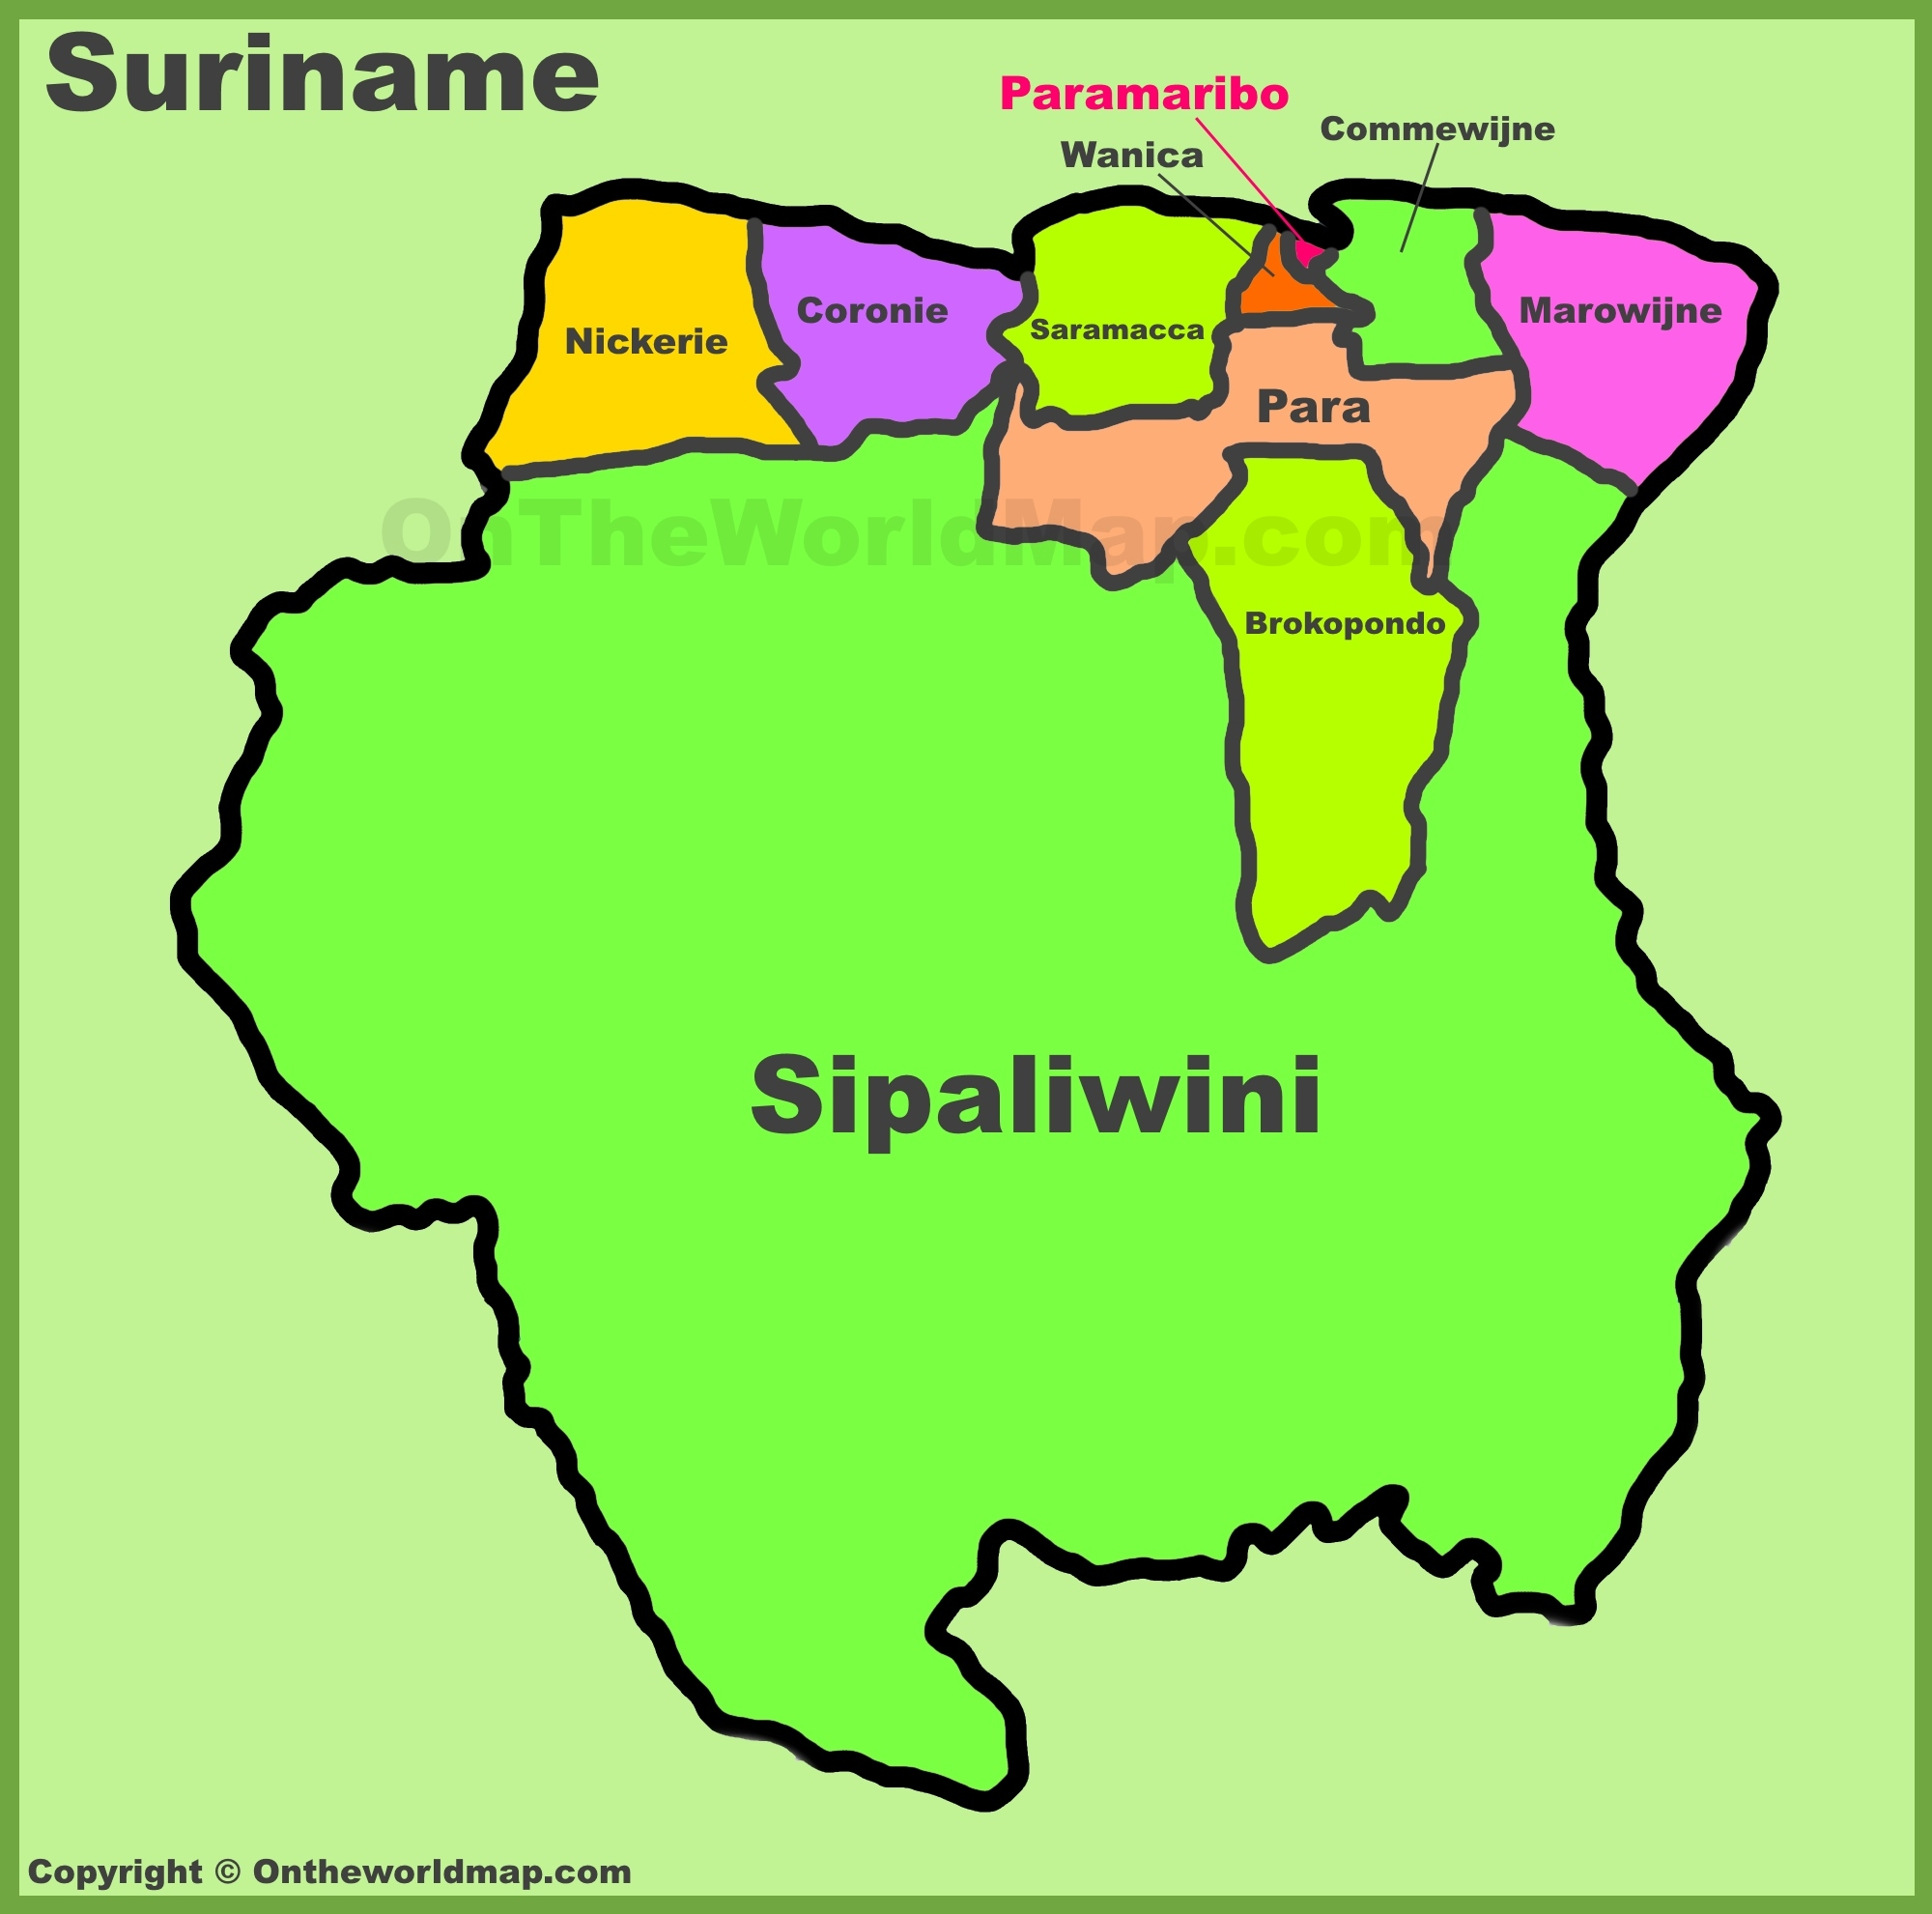 Suriname Maps Maps Of Suriname - paramaribo map